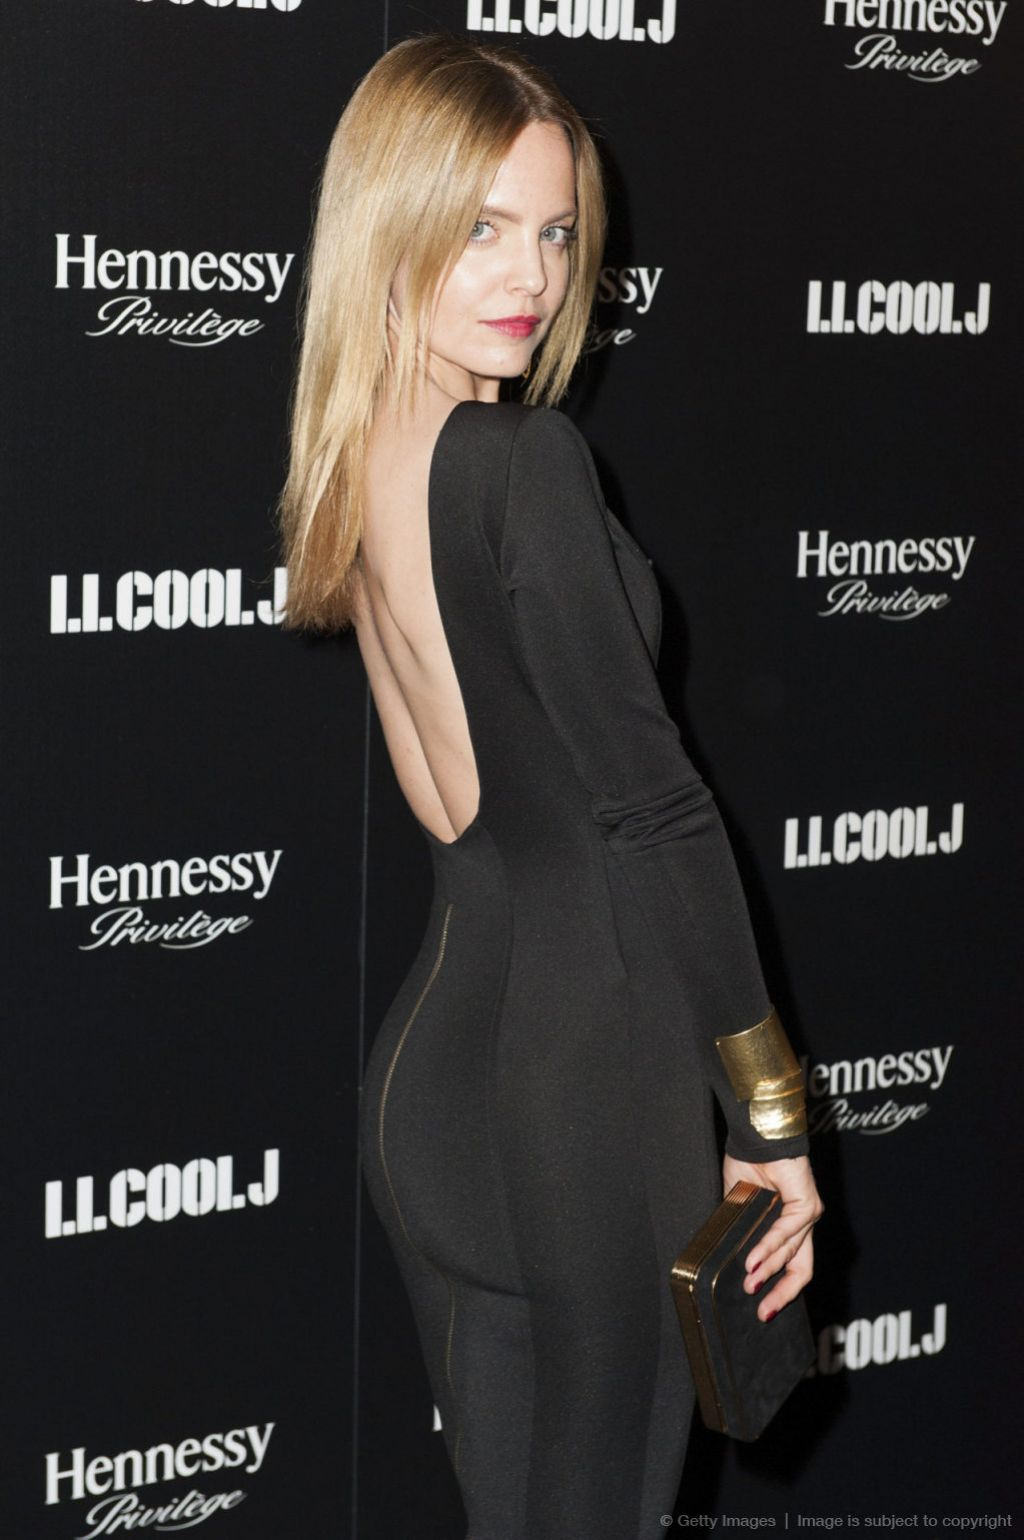 Mena Suvari Attends LL Cool J Hosted Pre-Grammy Awards Dinner, January 2014